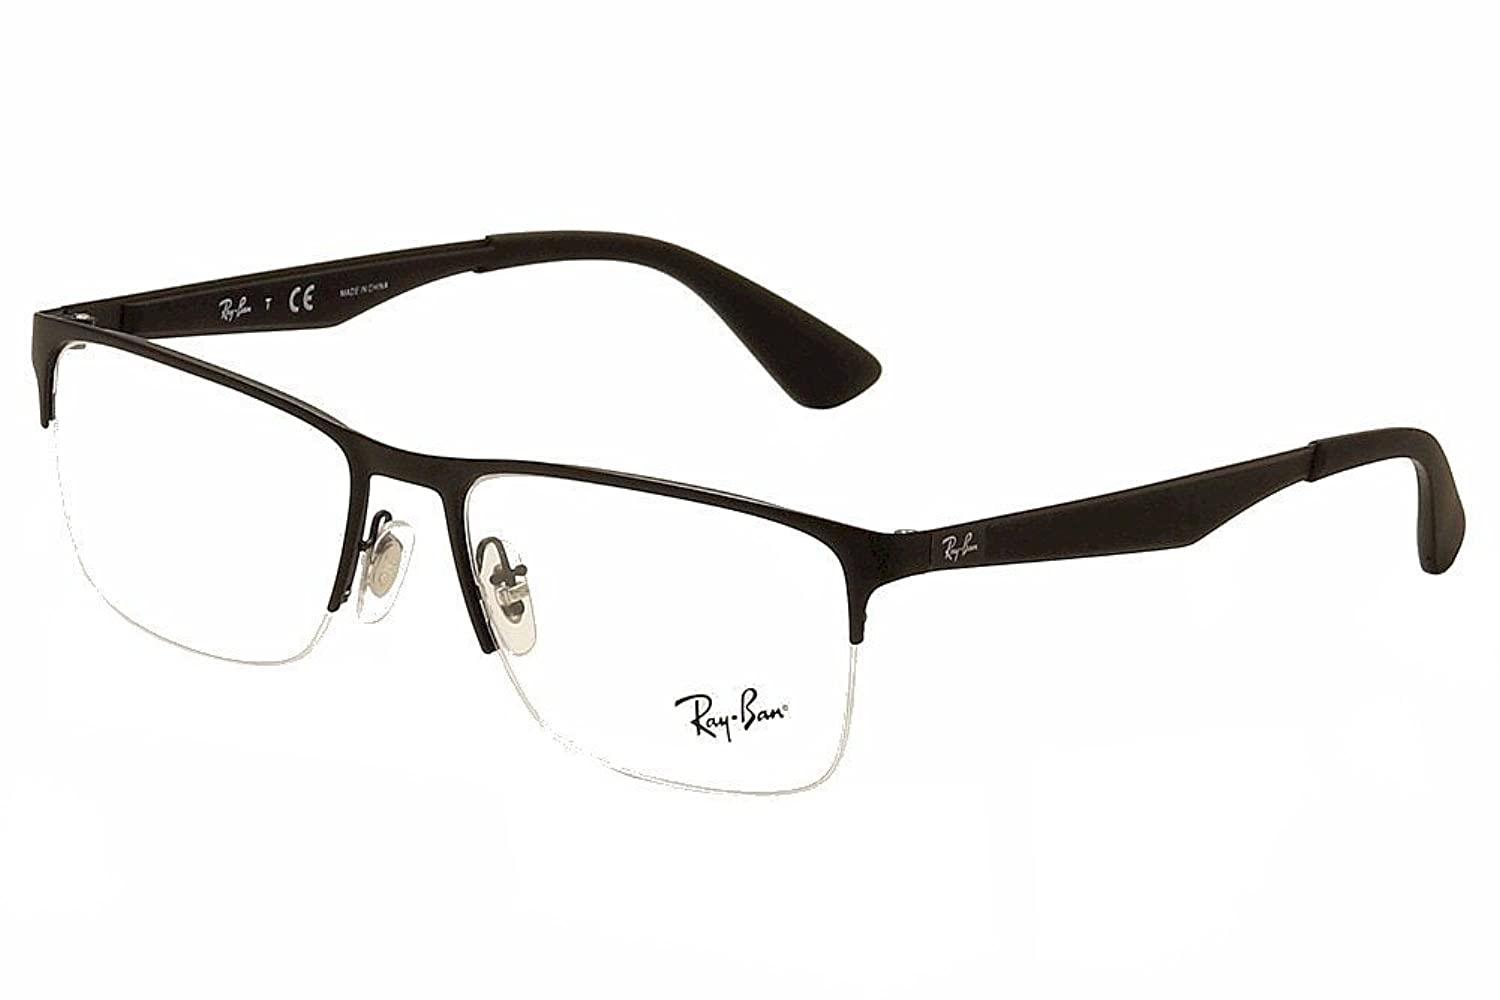 5294192b77 Ray Ban Prescription Sunglasses Vsp « Heritage Malta